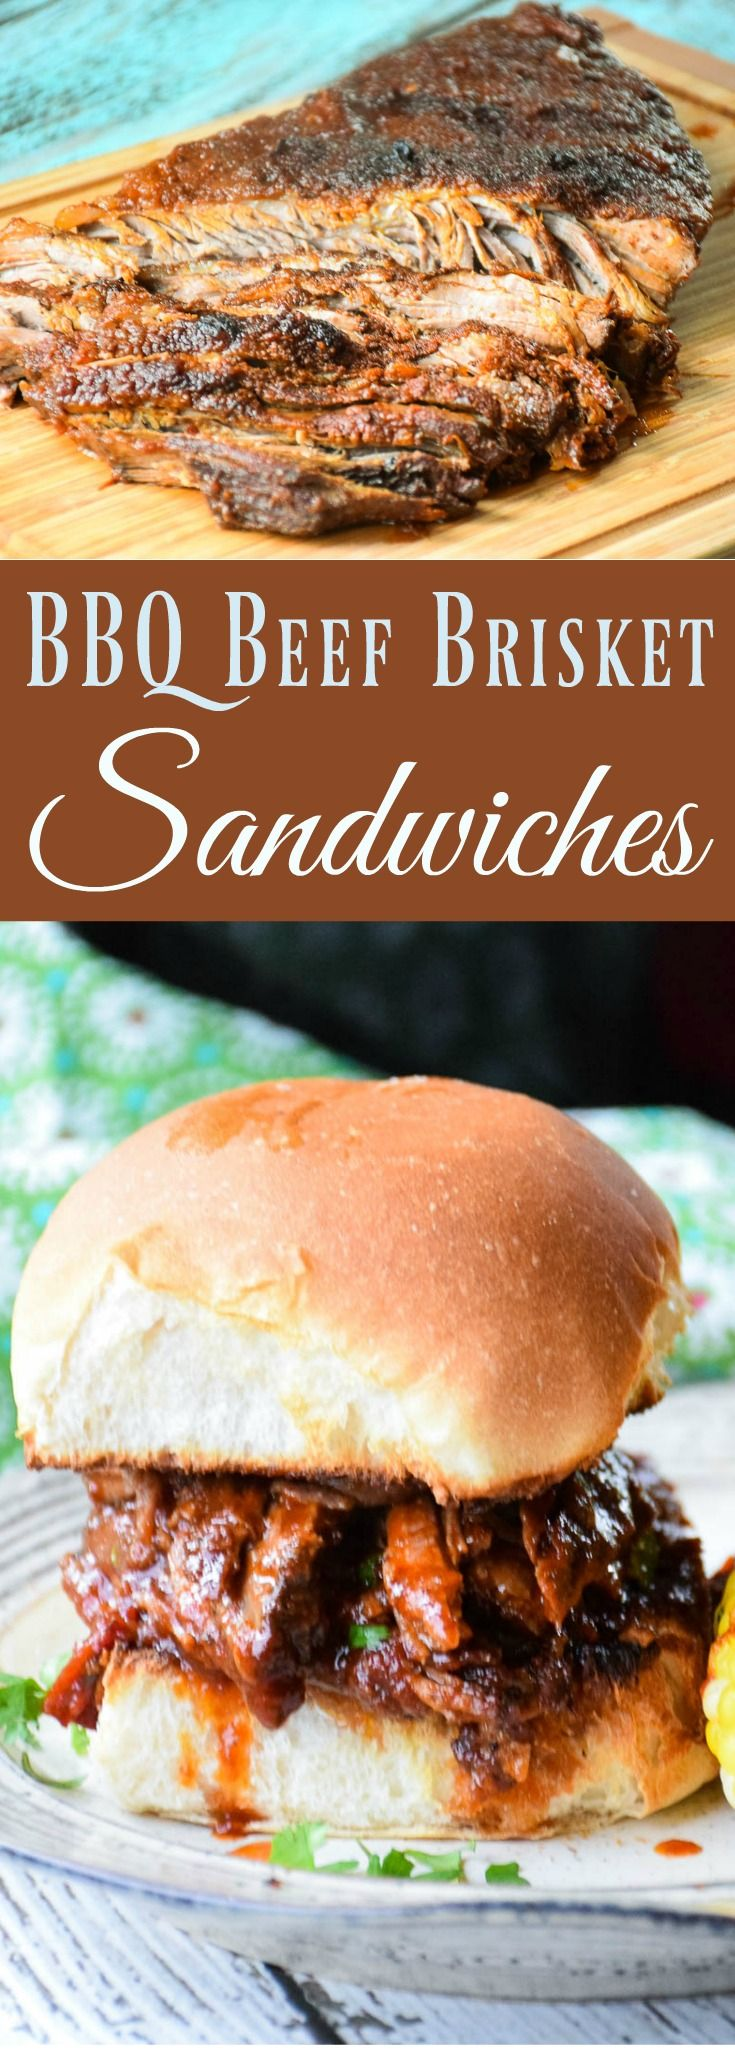 BBQ Beef Brisket Sandwiches- Certified Angus Beef brand Brisket slow cooked, full of flavor, covered in a slight sweet heat BBQ sauce and sandwiched with a hearty toasted bun! #BestBeef #SundaySupper #RootsinBoots